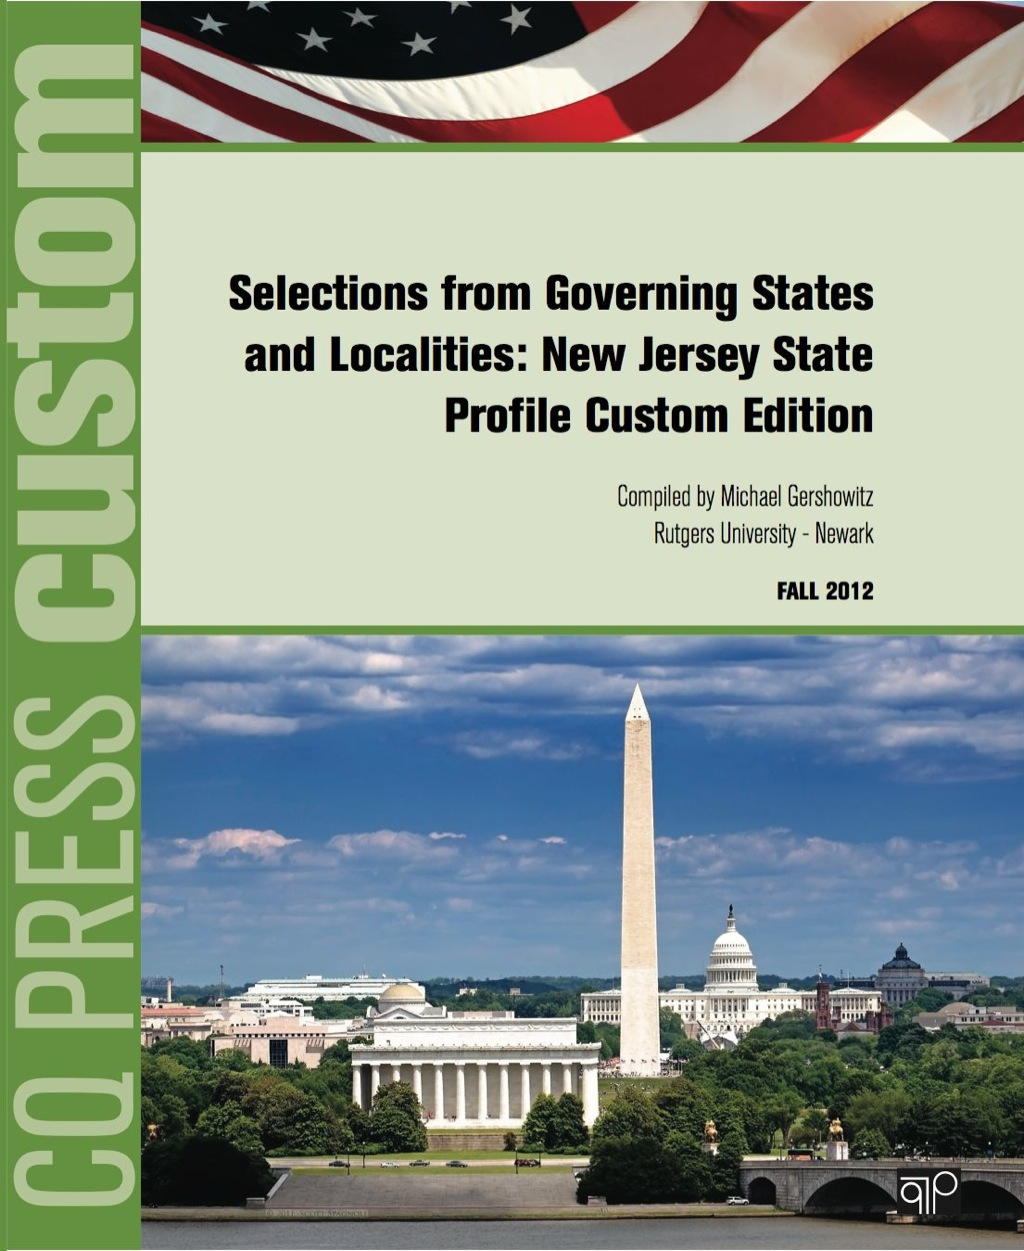 CUSTOM: Selections from Governing States and Localities: New Jersey State Profile Custom Edition (ebook) eBooks